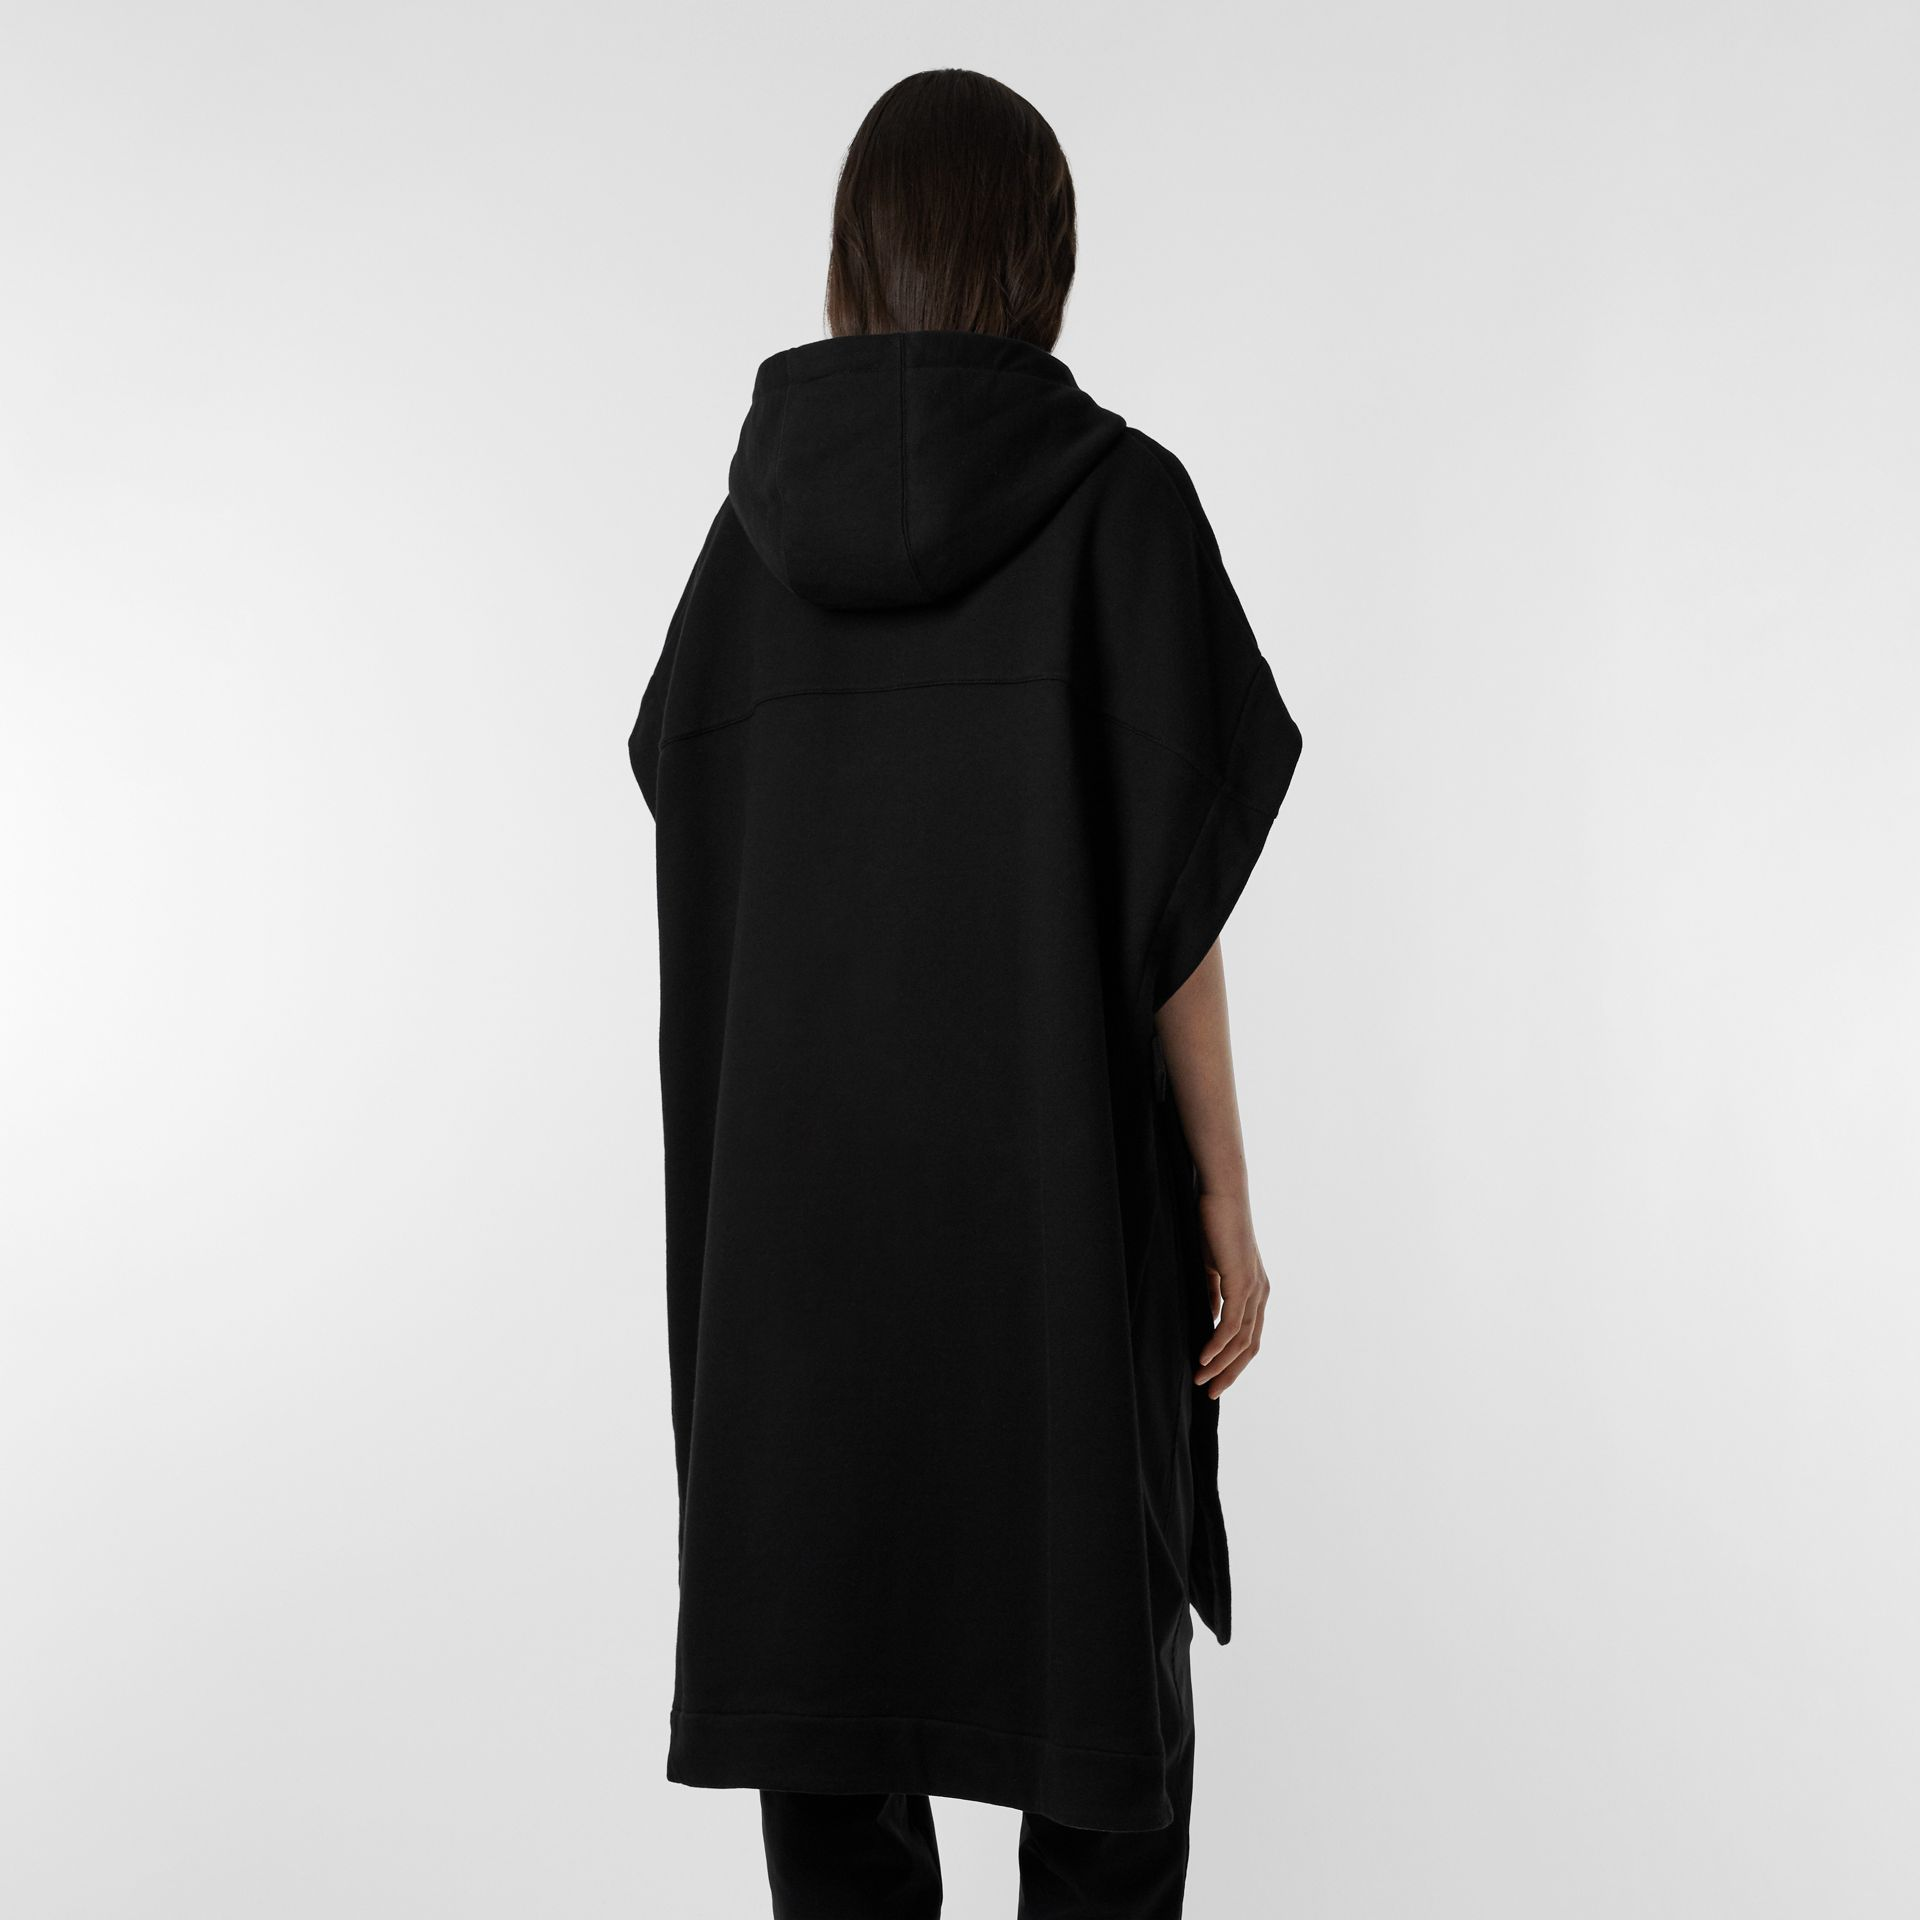 Monogram Motif Cotton Oversized Hooded Poncho in Black | Burberry United States - gallery image 10